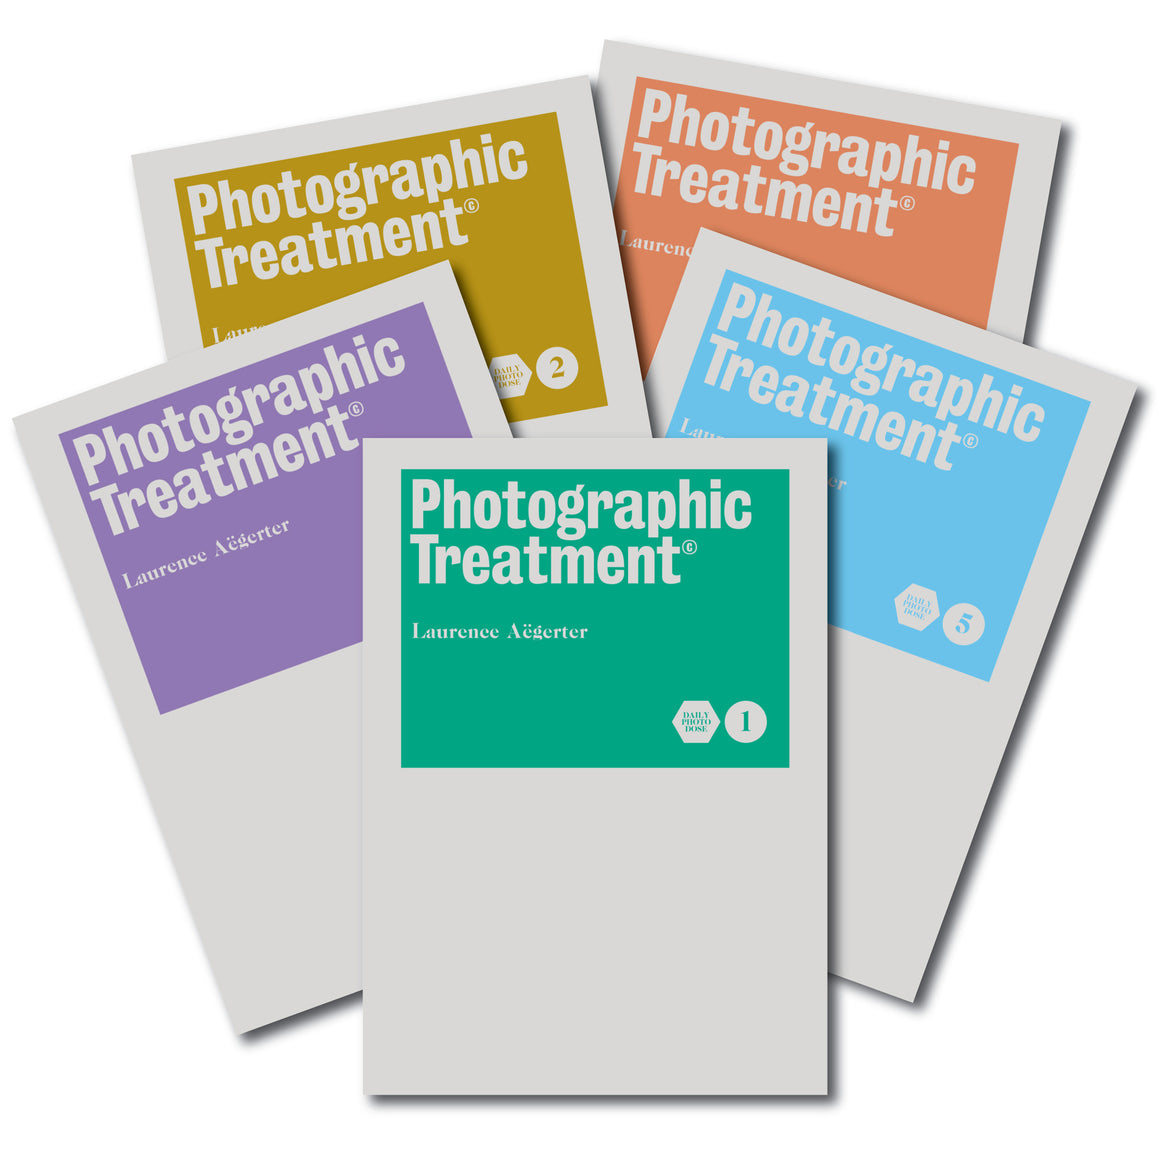 Photographic Treatment